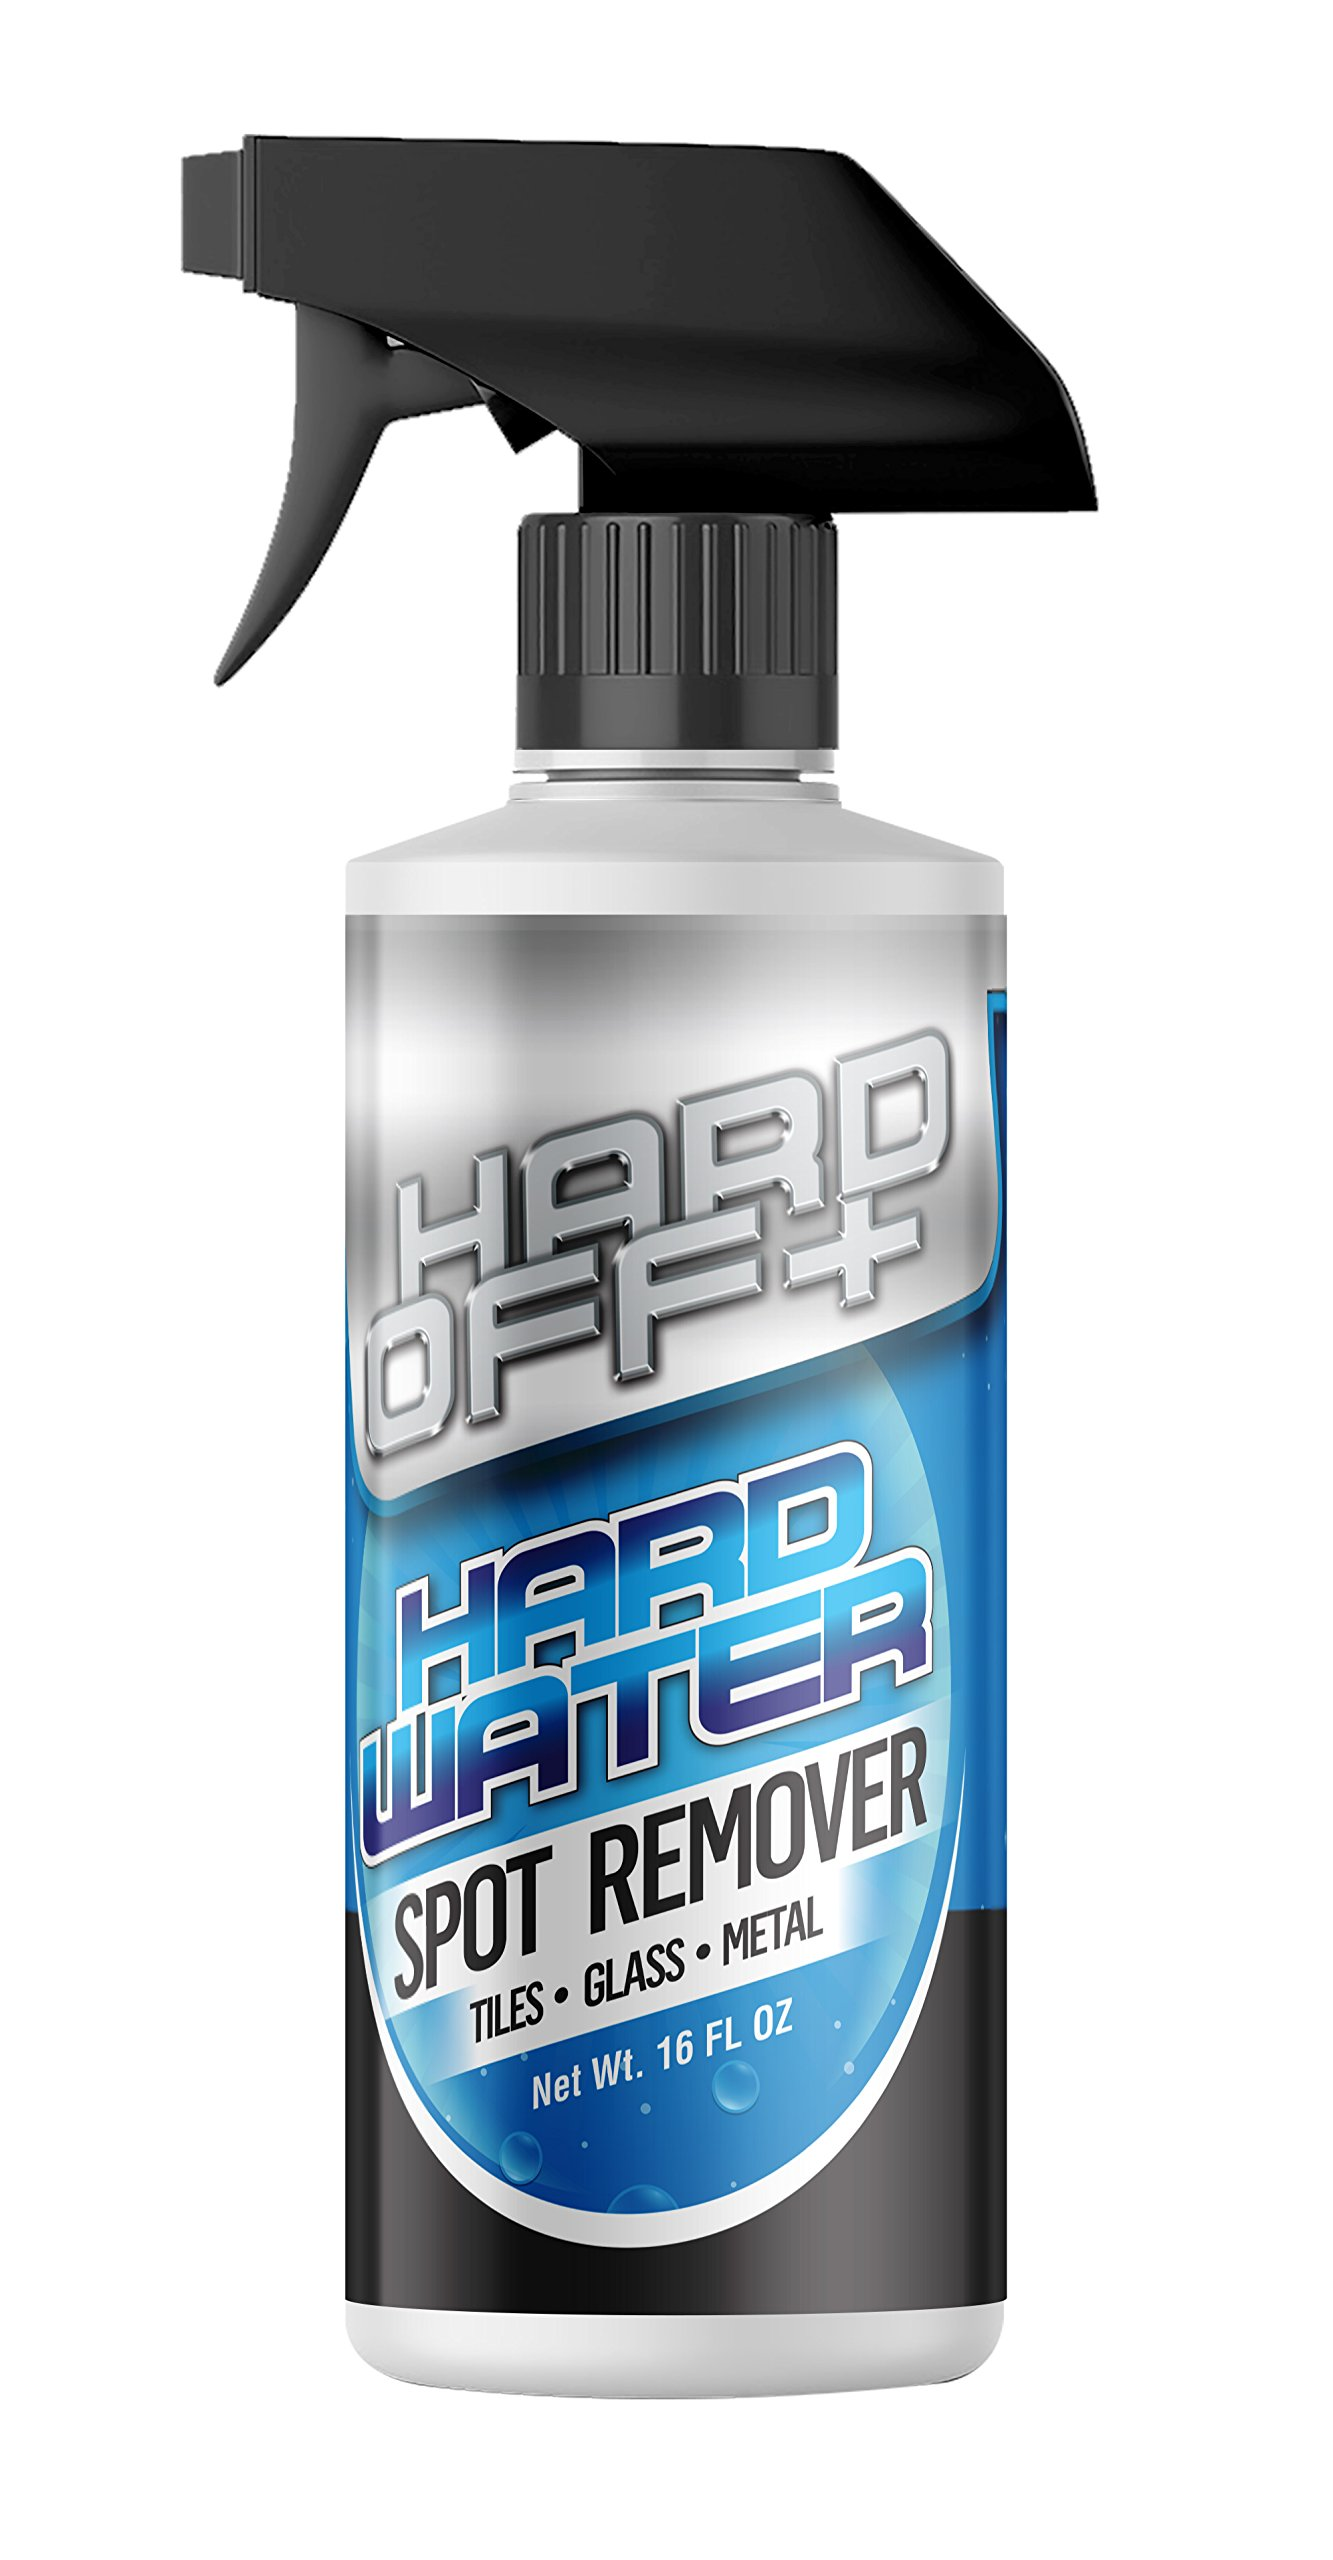 Hard Off+ Hard Water Stain Remover - Professional Grade Shower Cleaner - Bathroom Tile Cleaner Removes Tough Stains Easily - Hard Water Spot Remover Works on Tile, Metal, Glass - Shower Door Cleaner by Giant Lion